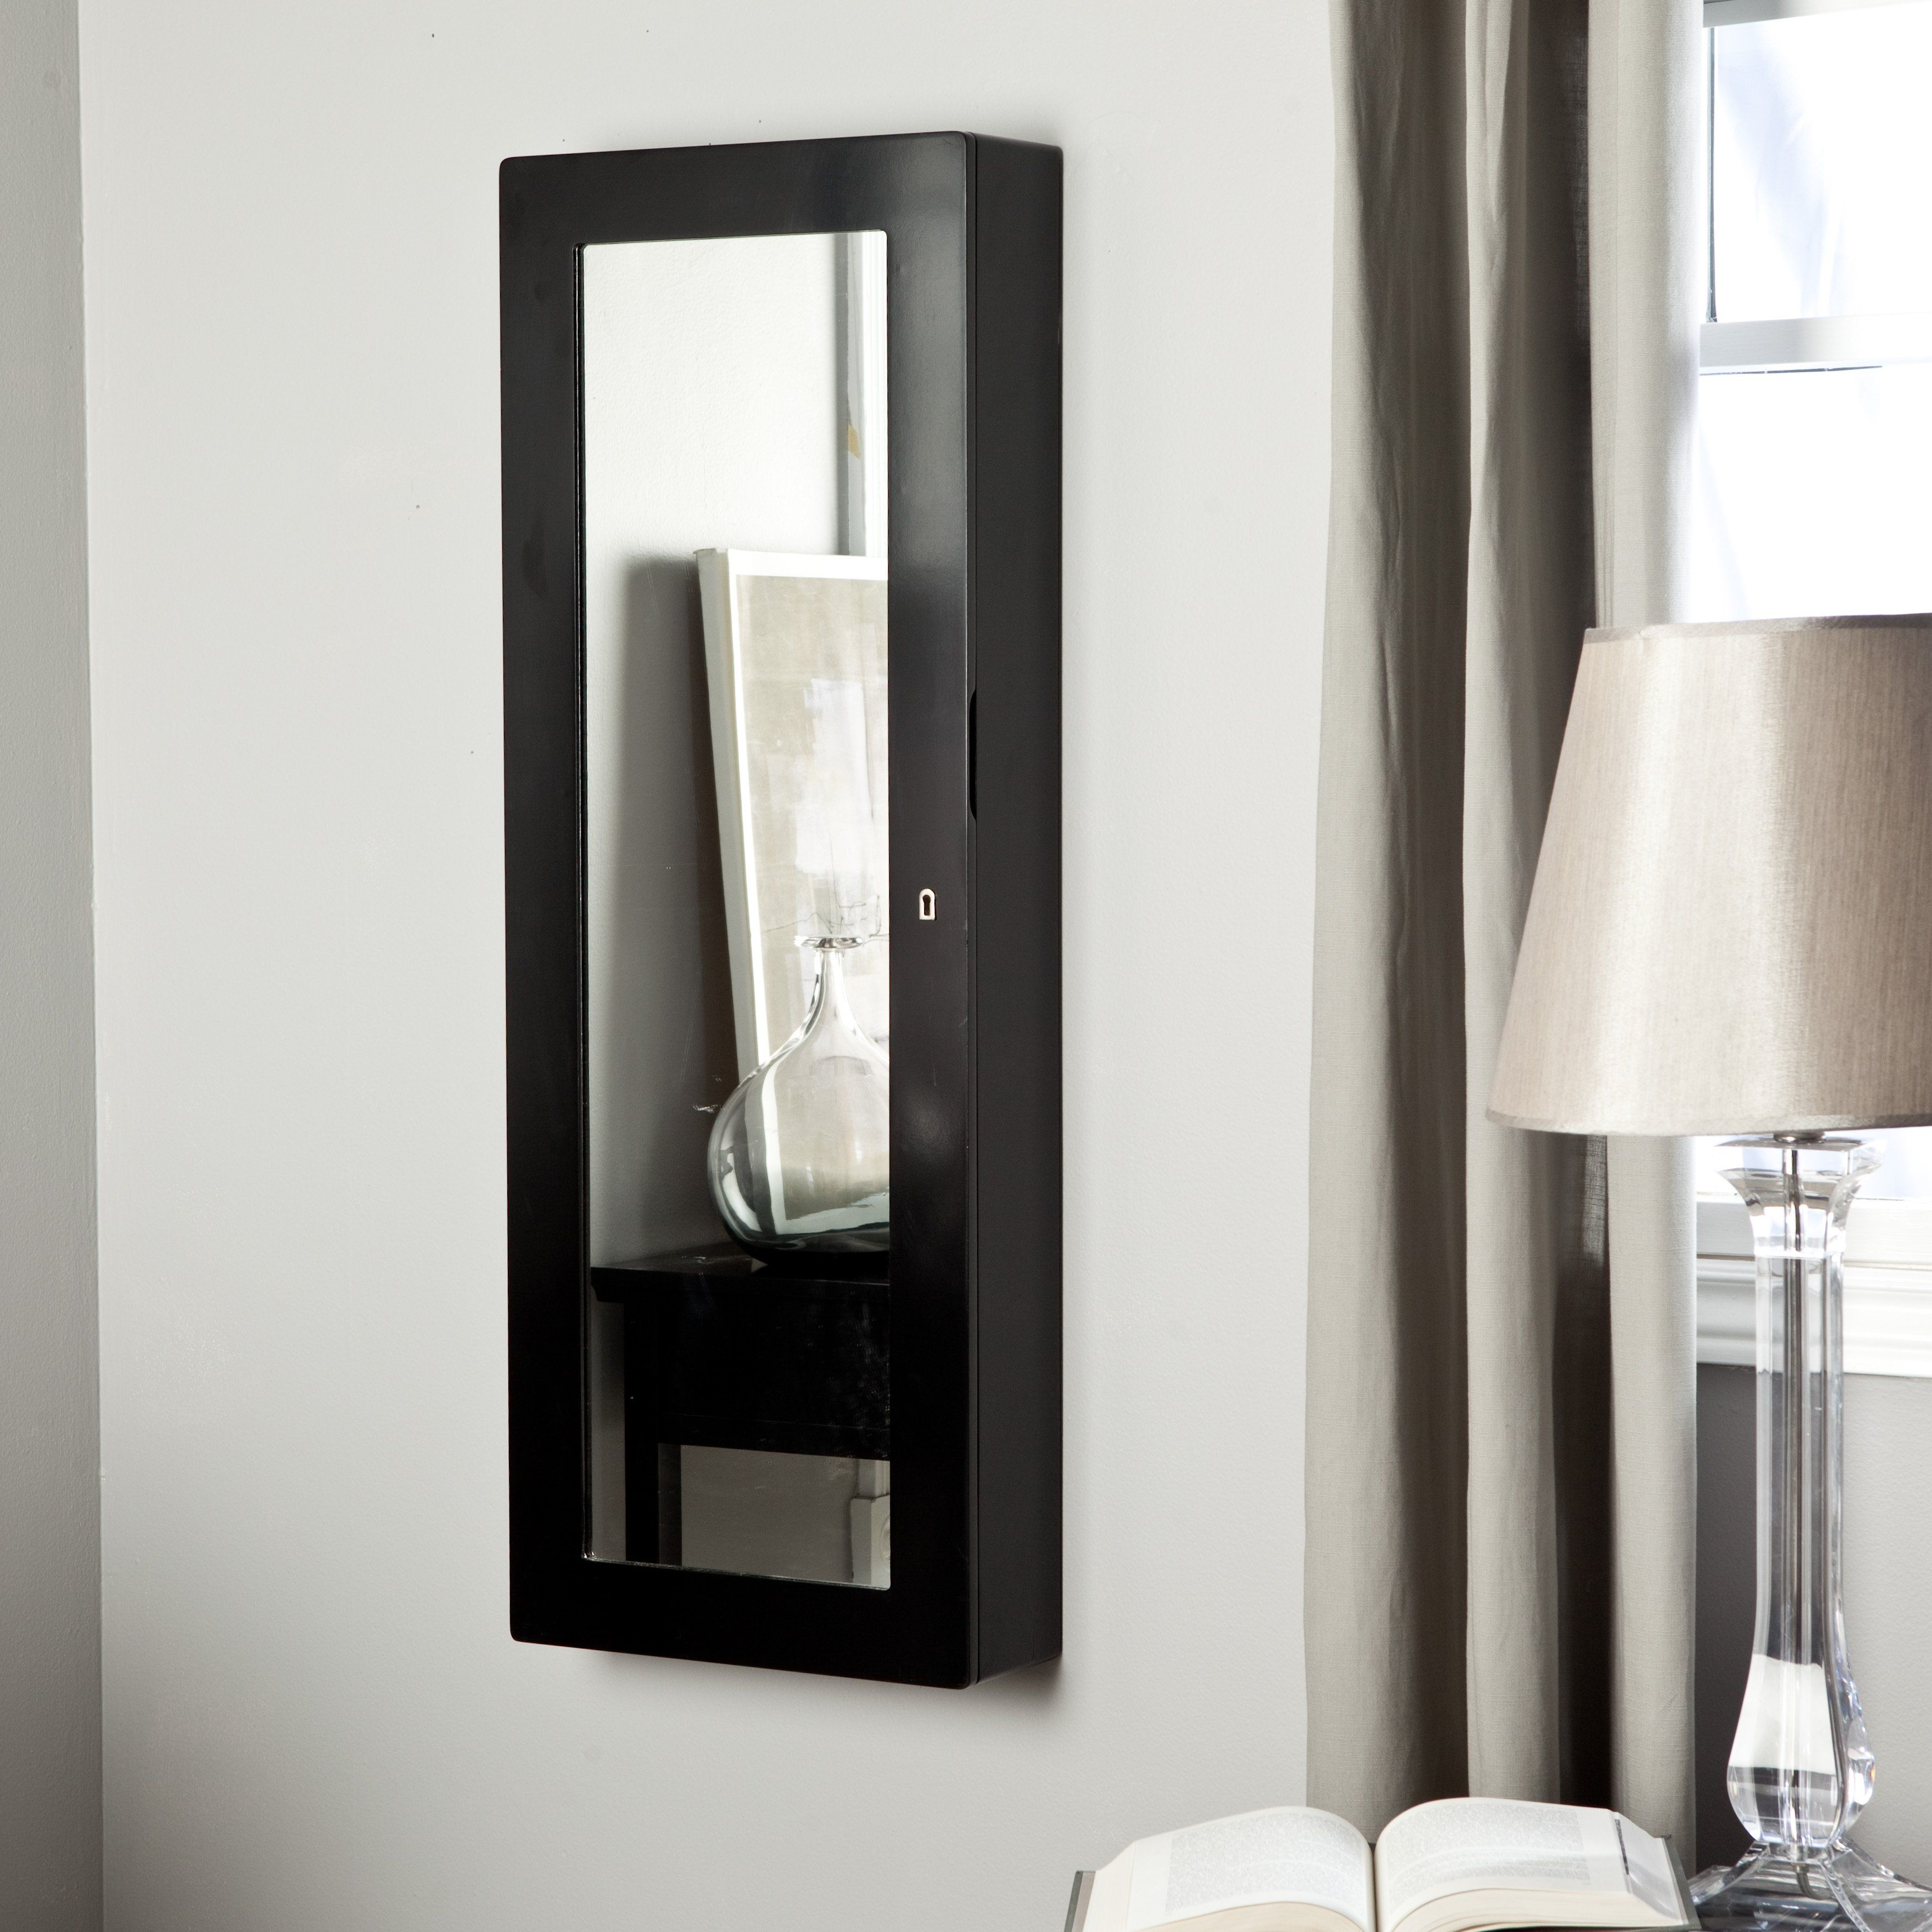 Have To Have It Paloma Wooden Wall Jewelry Armoire High Gloss Black 199 98 Wall Mounted Jewelry Armoire Jewelry Armoire Bathroom Wall Cabinets